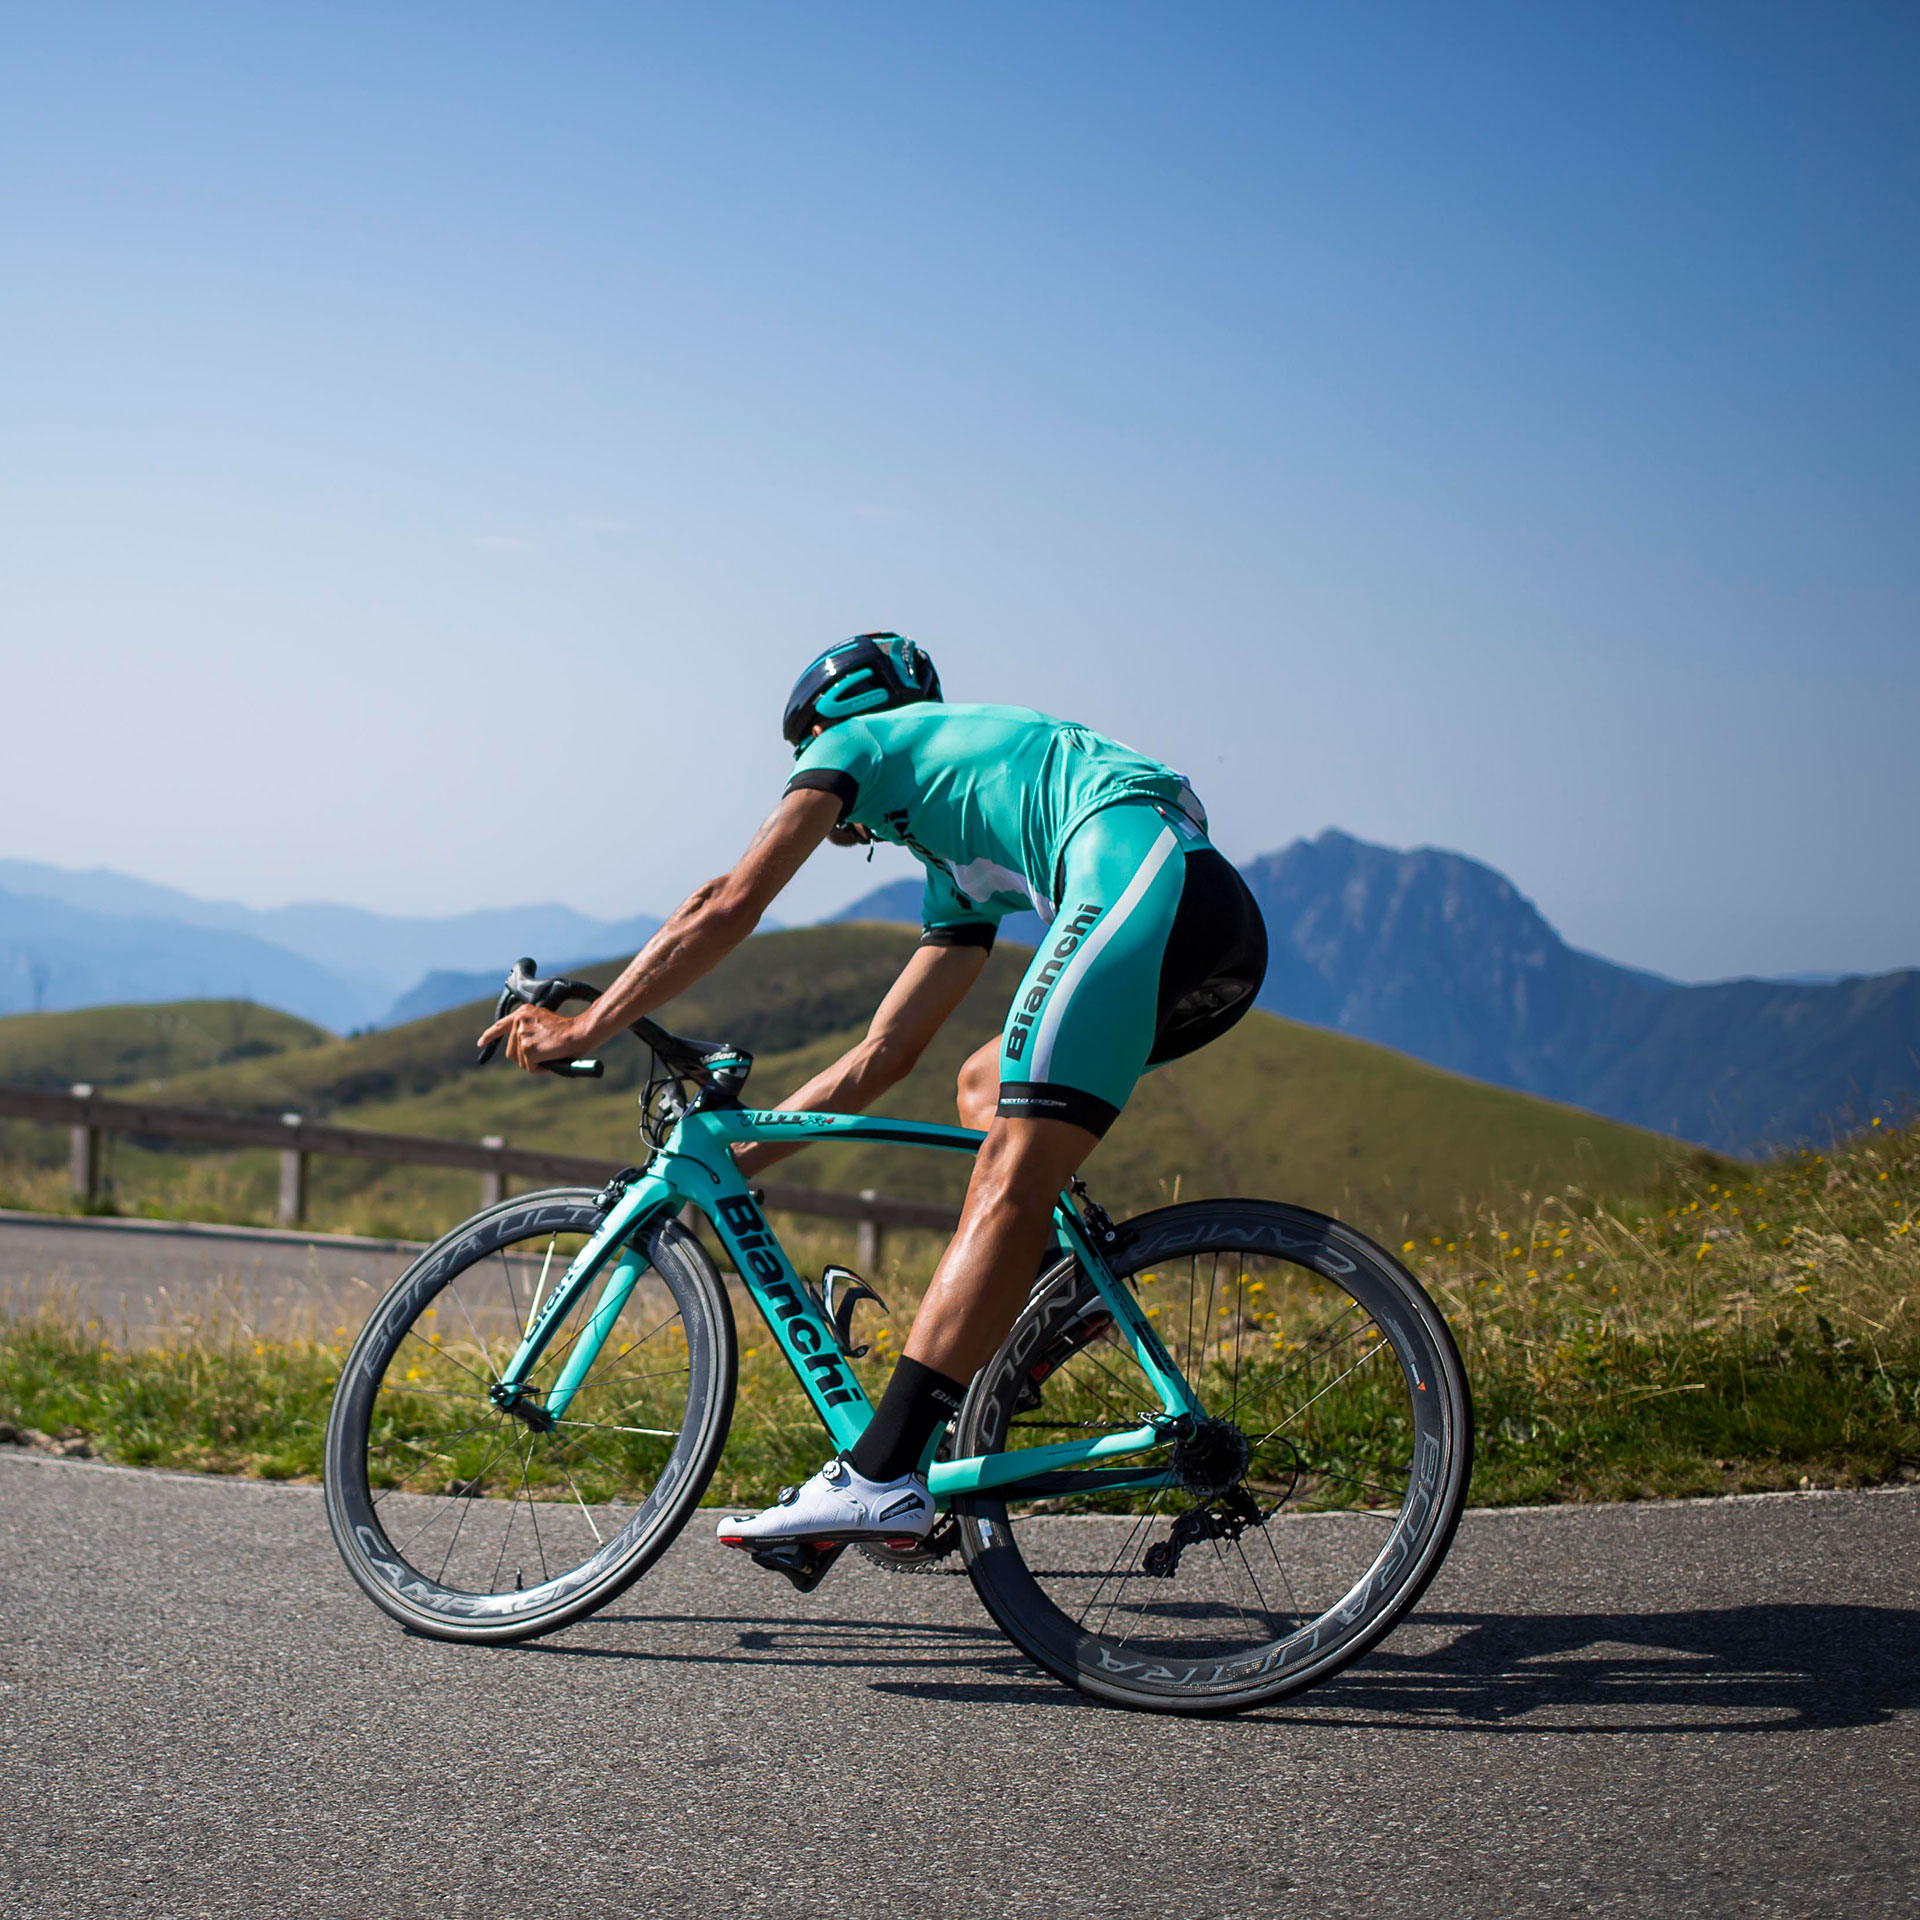 Bianchi Oltre XR4 Road Bike Mountain